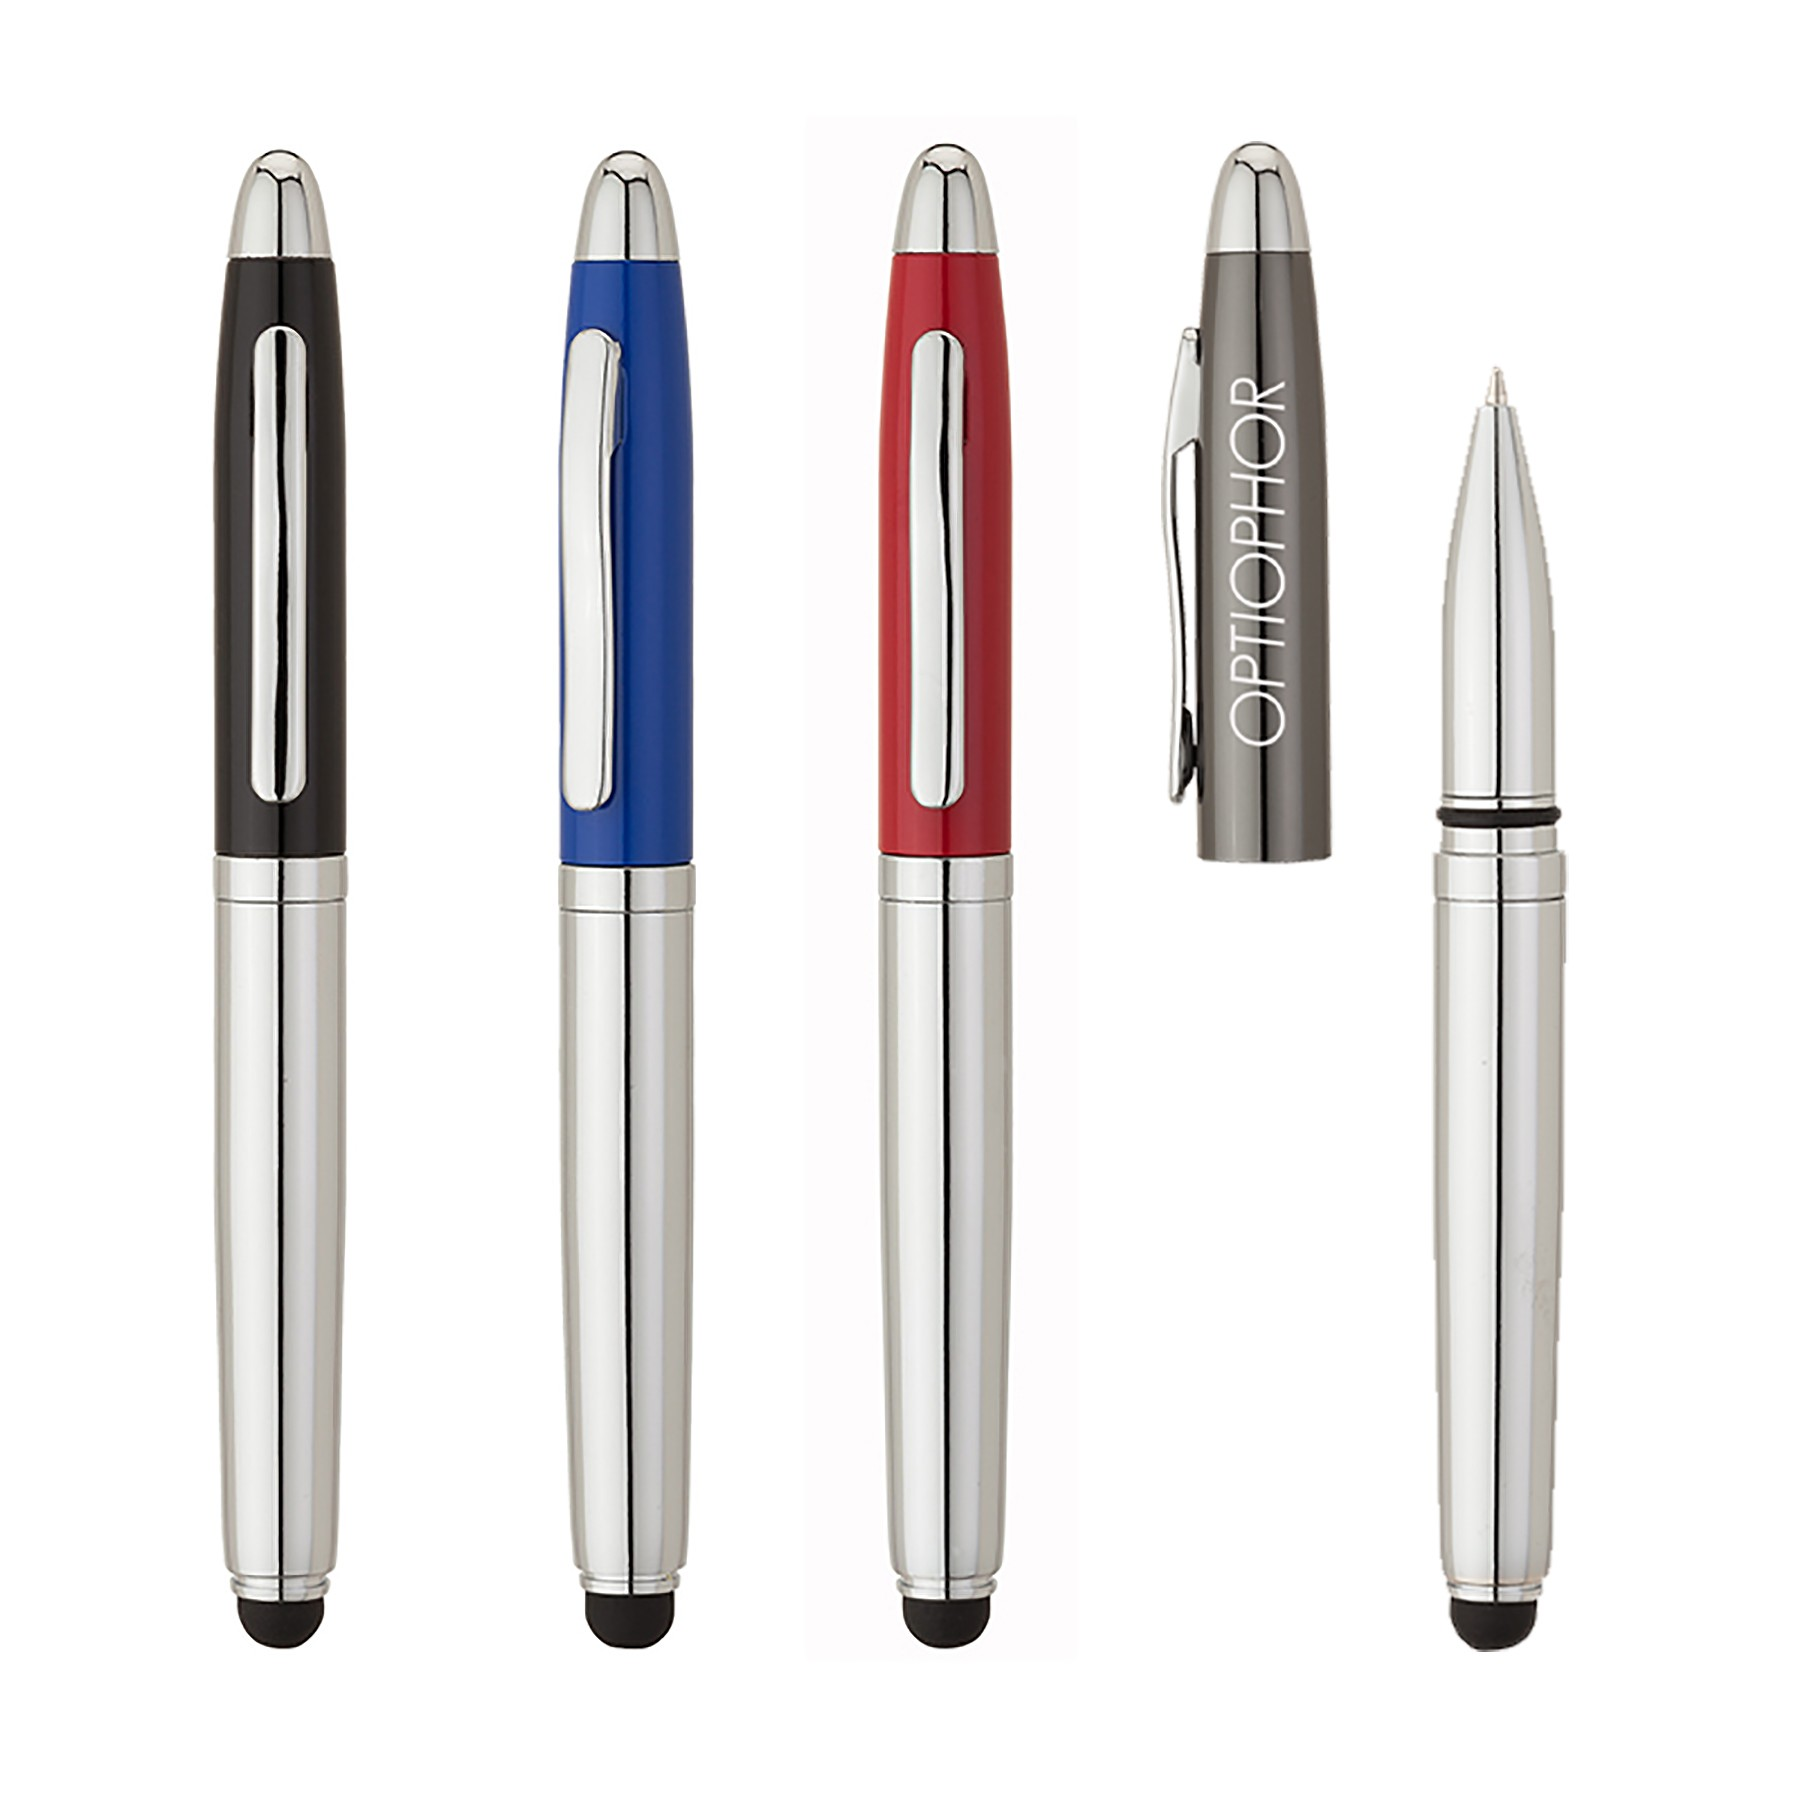 Aperture Ballpoint Pen/Stylus/LED Light